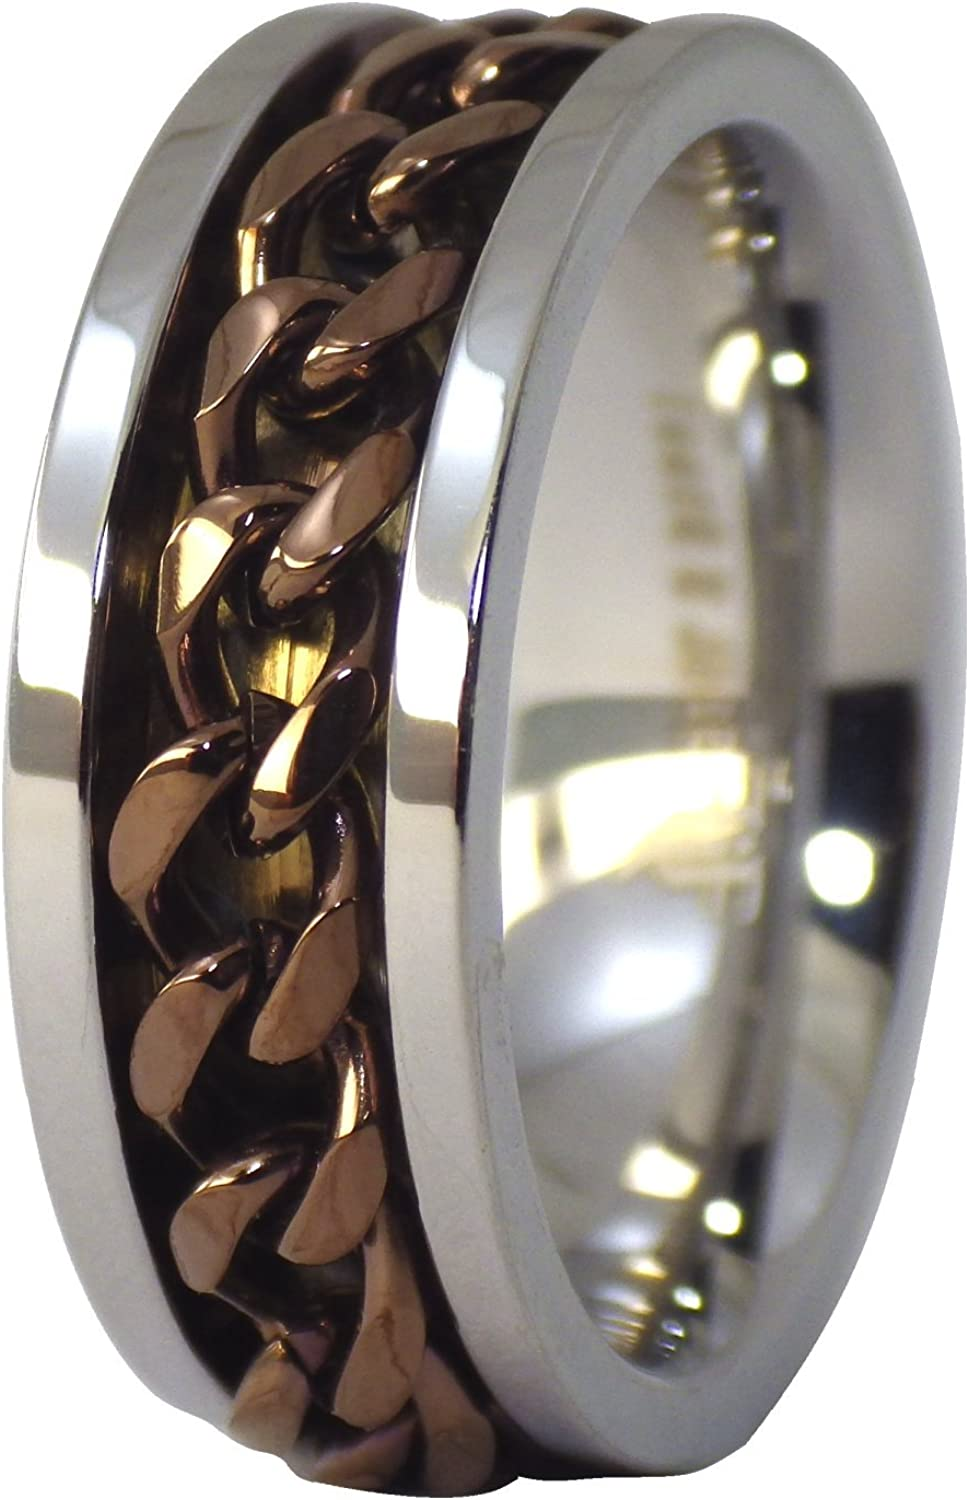 Fantasy Forge Jewelry Coffee Chain Spinner Ring Stainless Steel 8mm Comfort Fit Wedding Band Size 7-16